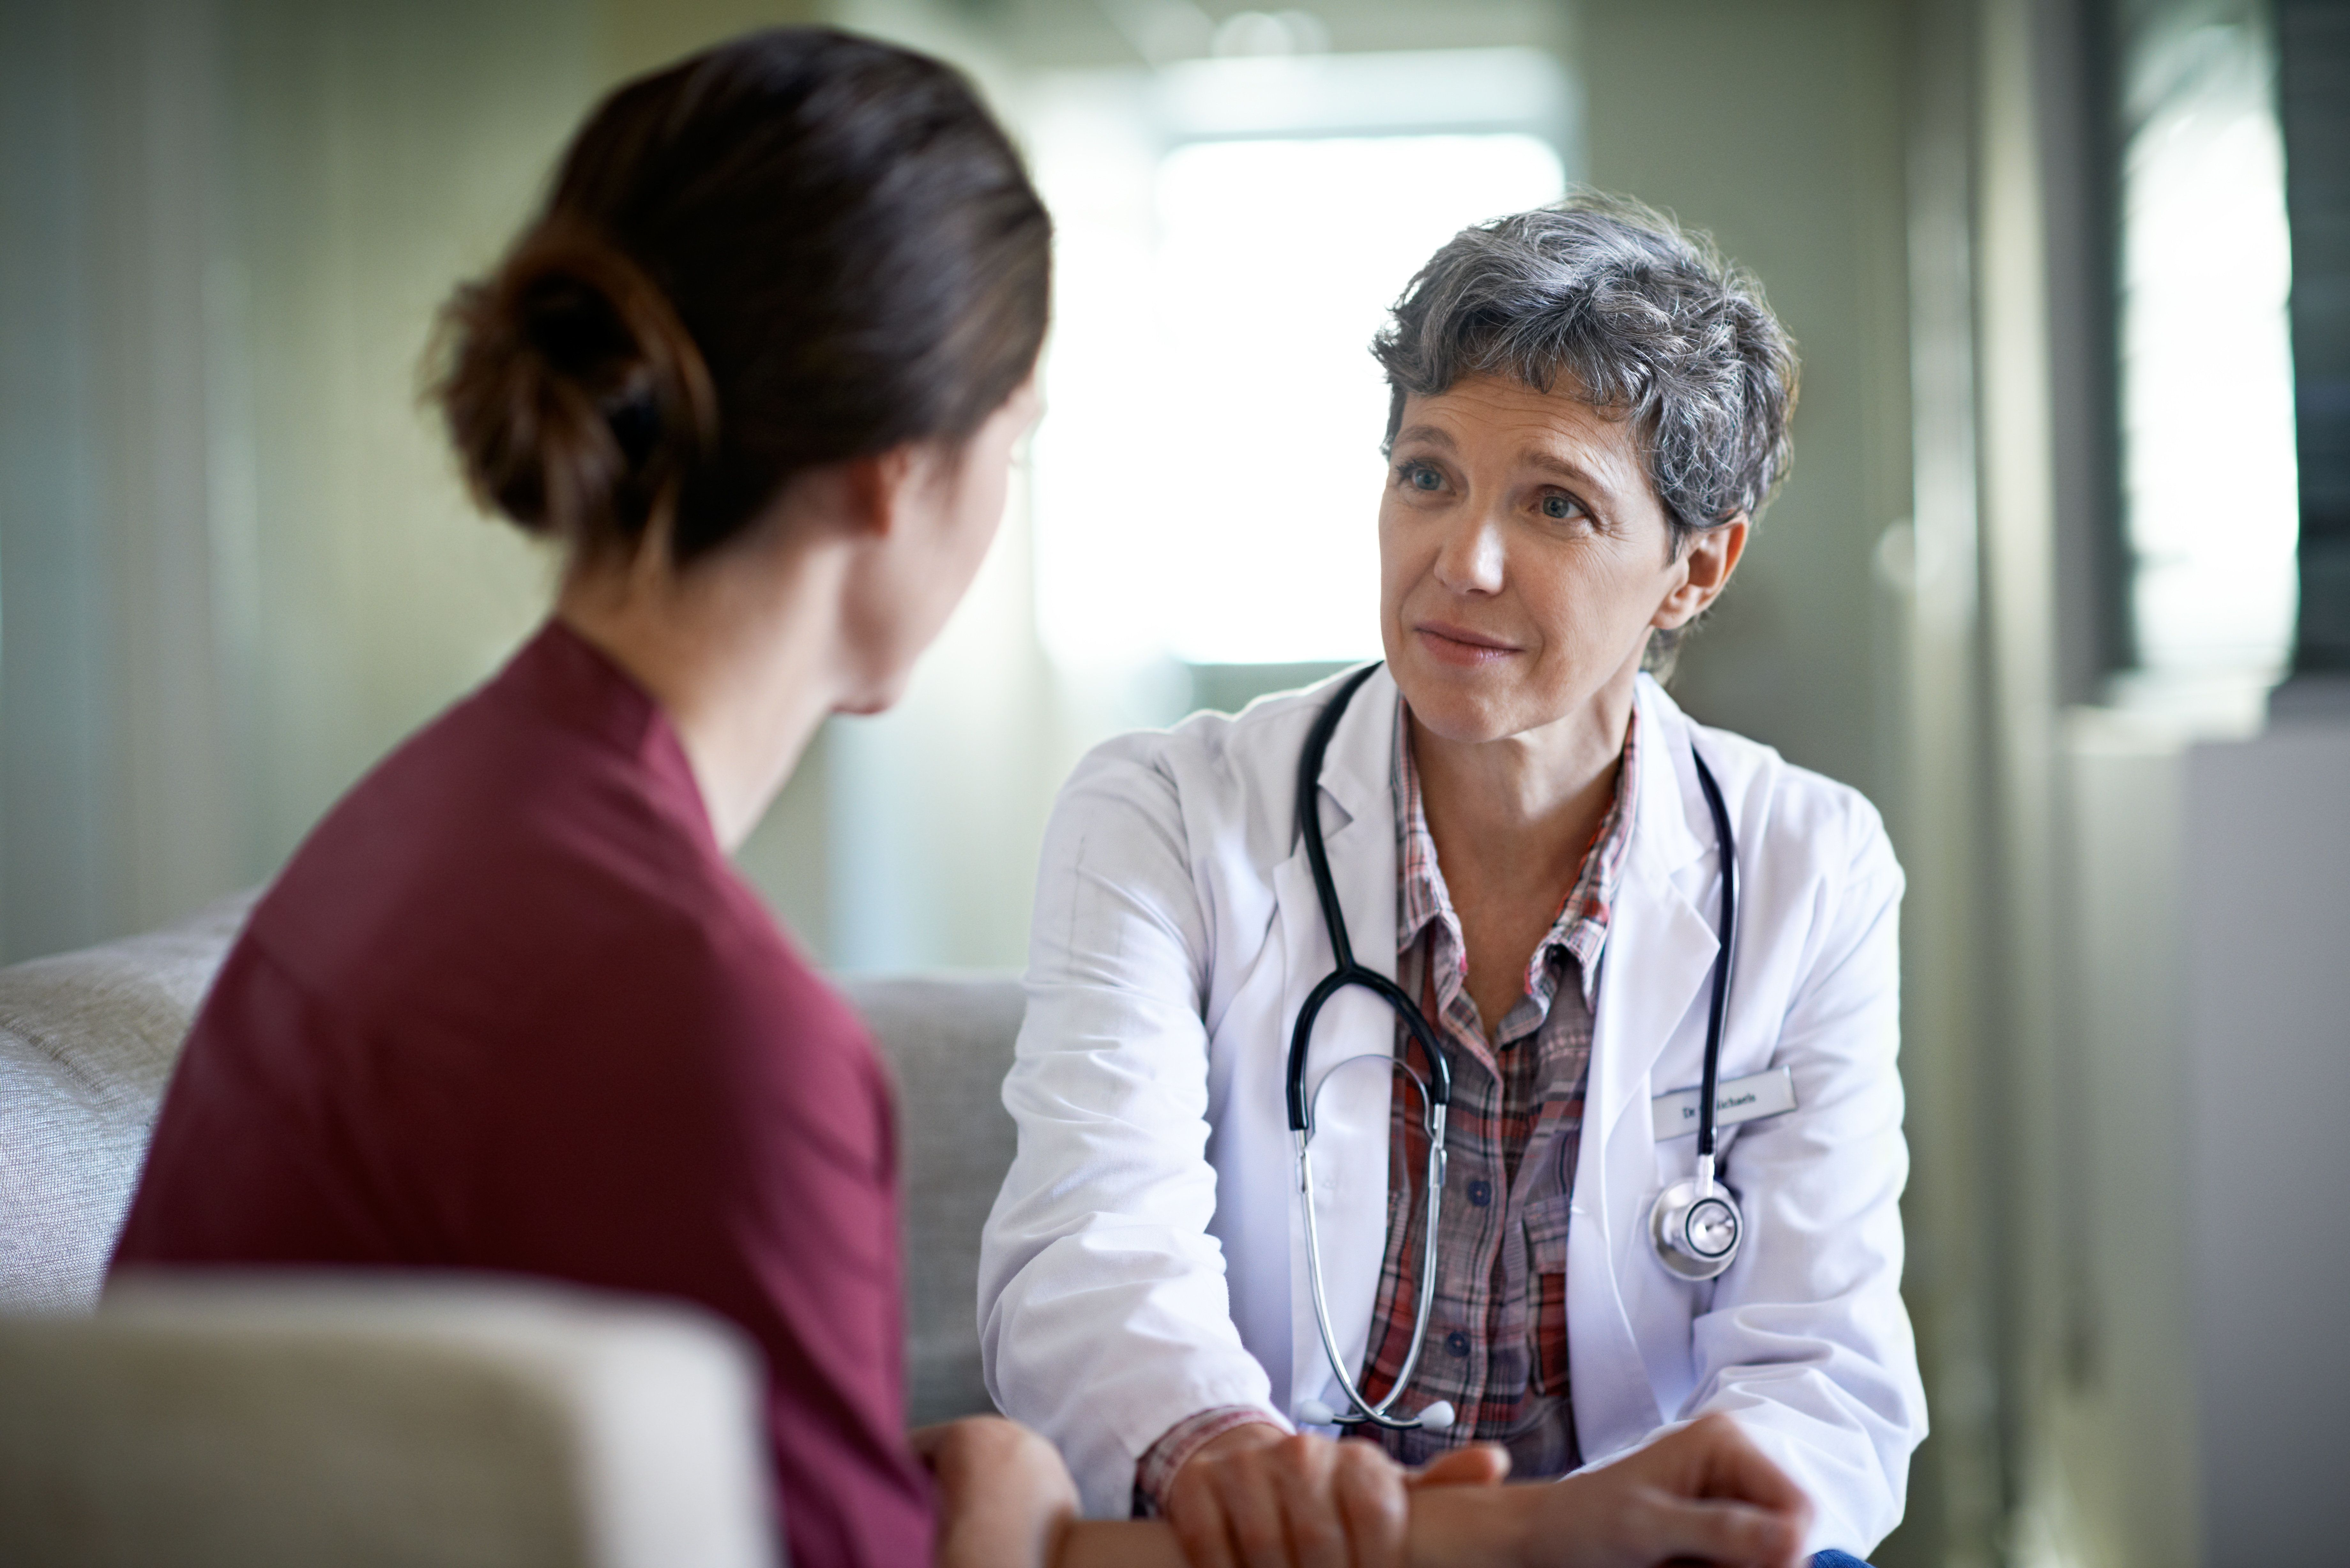 Hospital Admissions For Eating Disorders Double: Here's How To Get Early